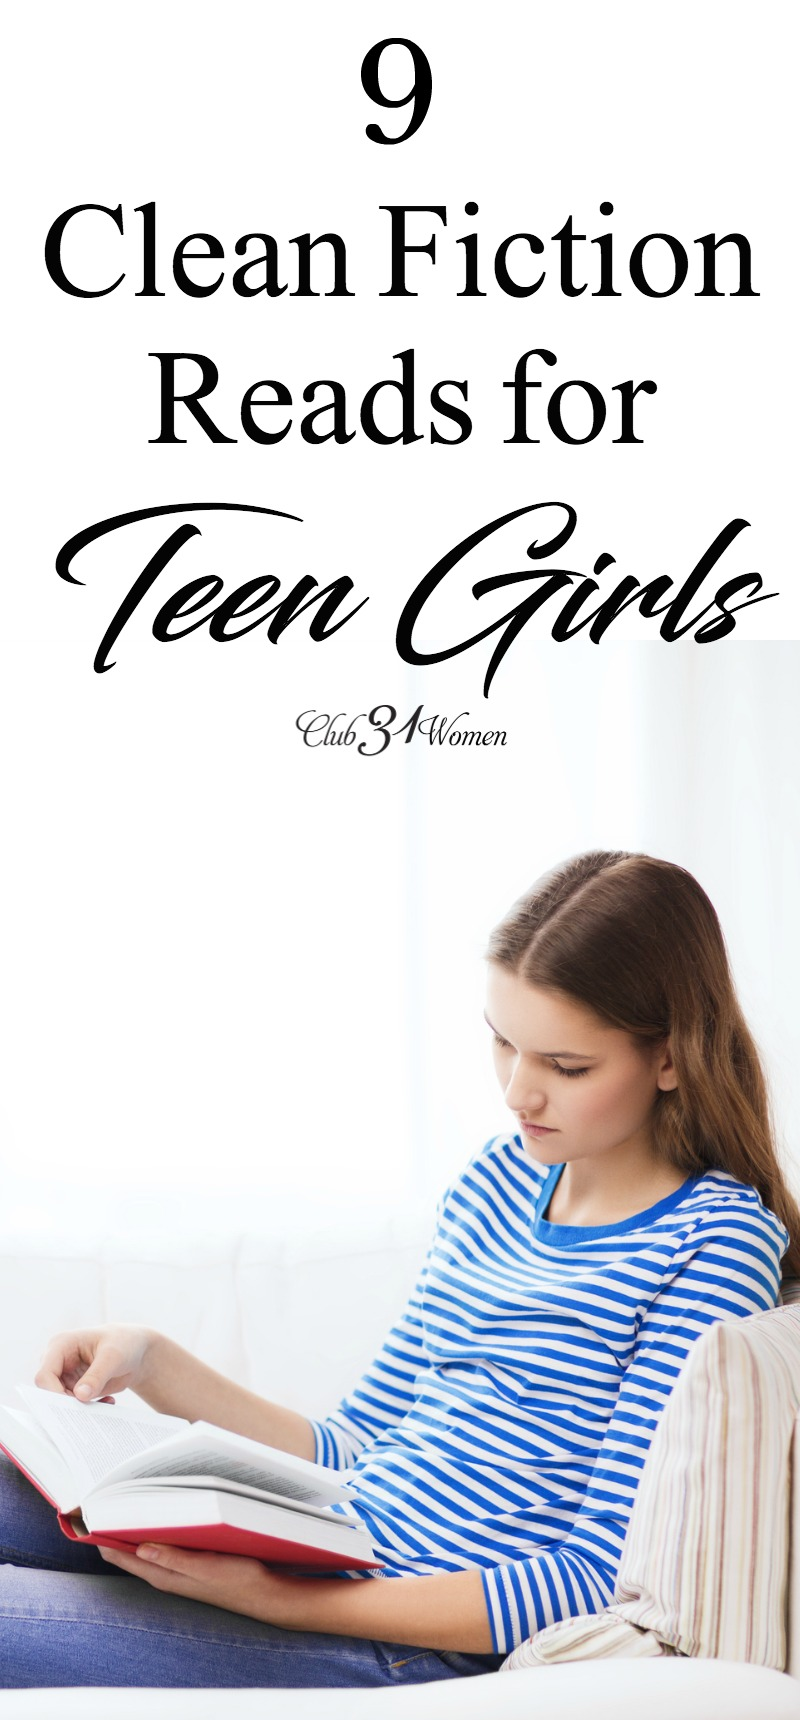 It can be difficult to find good, clean fiction reads for teen girls today. We hope this list will get you started in the right direction. via @Club31Women